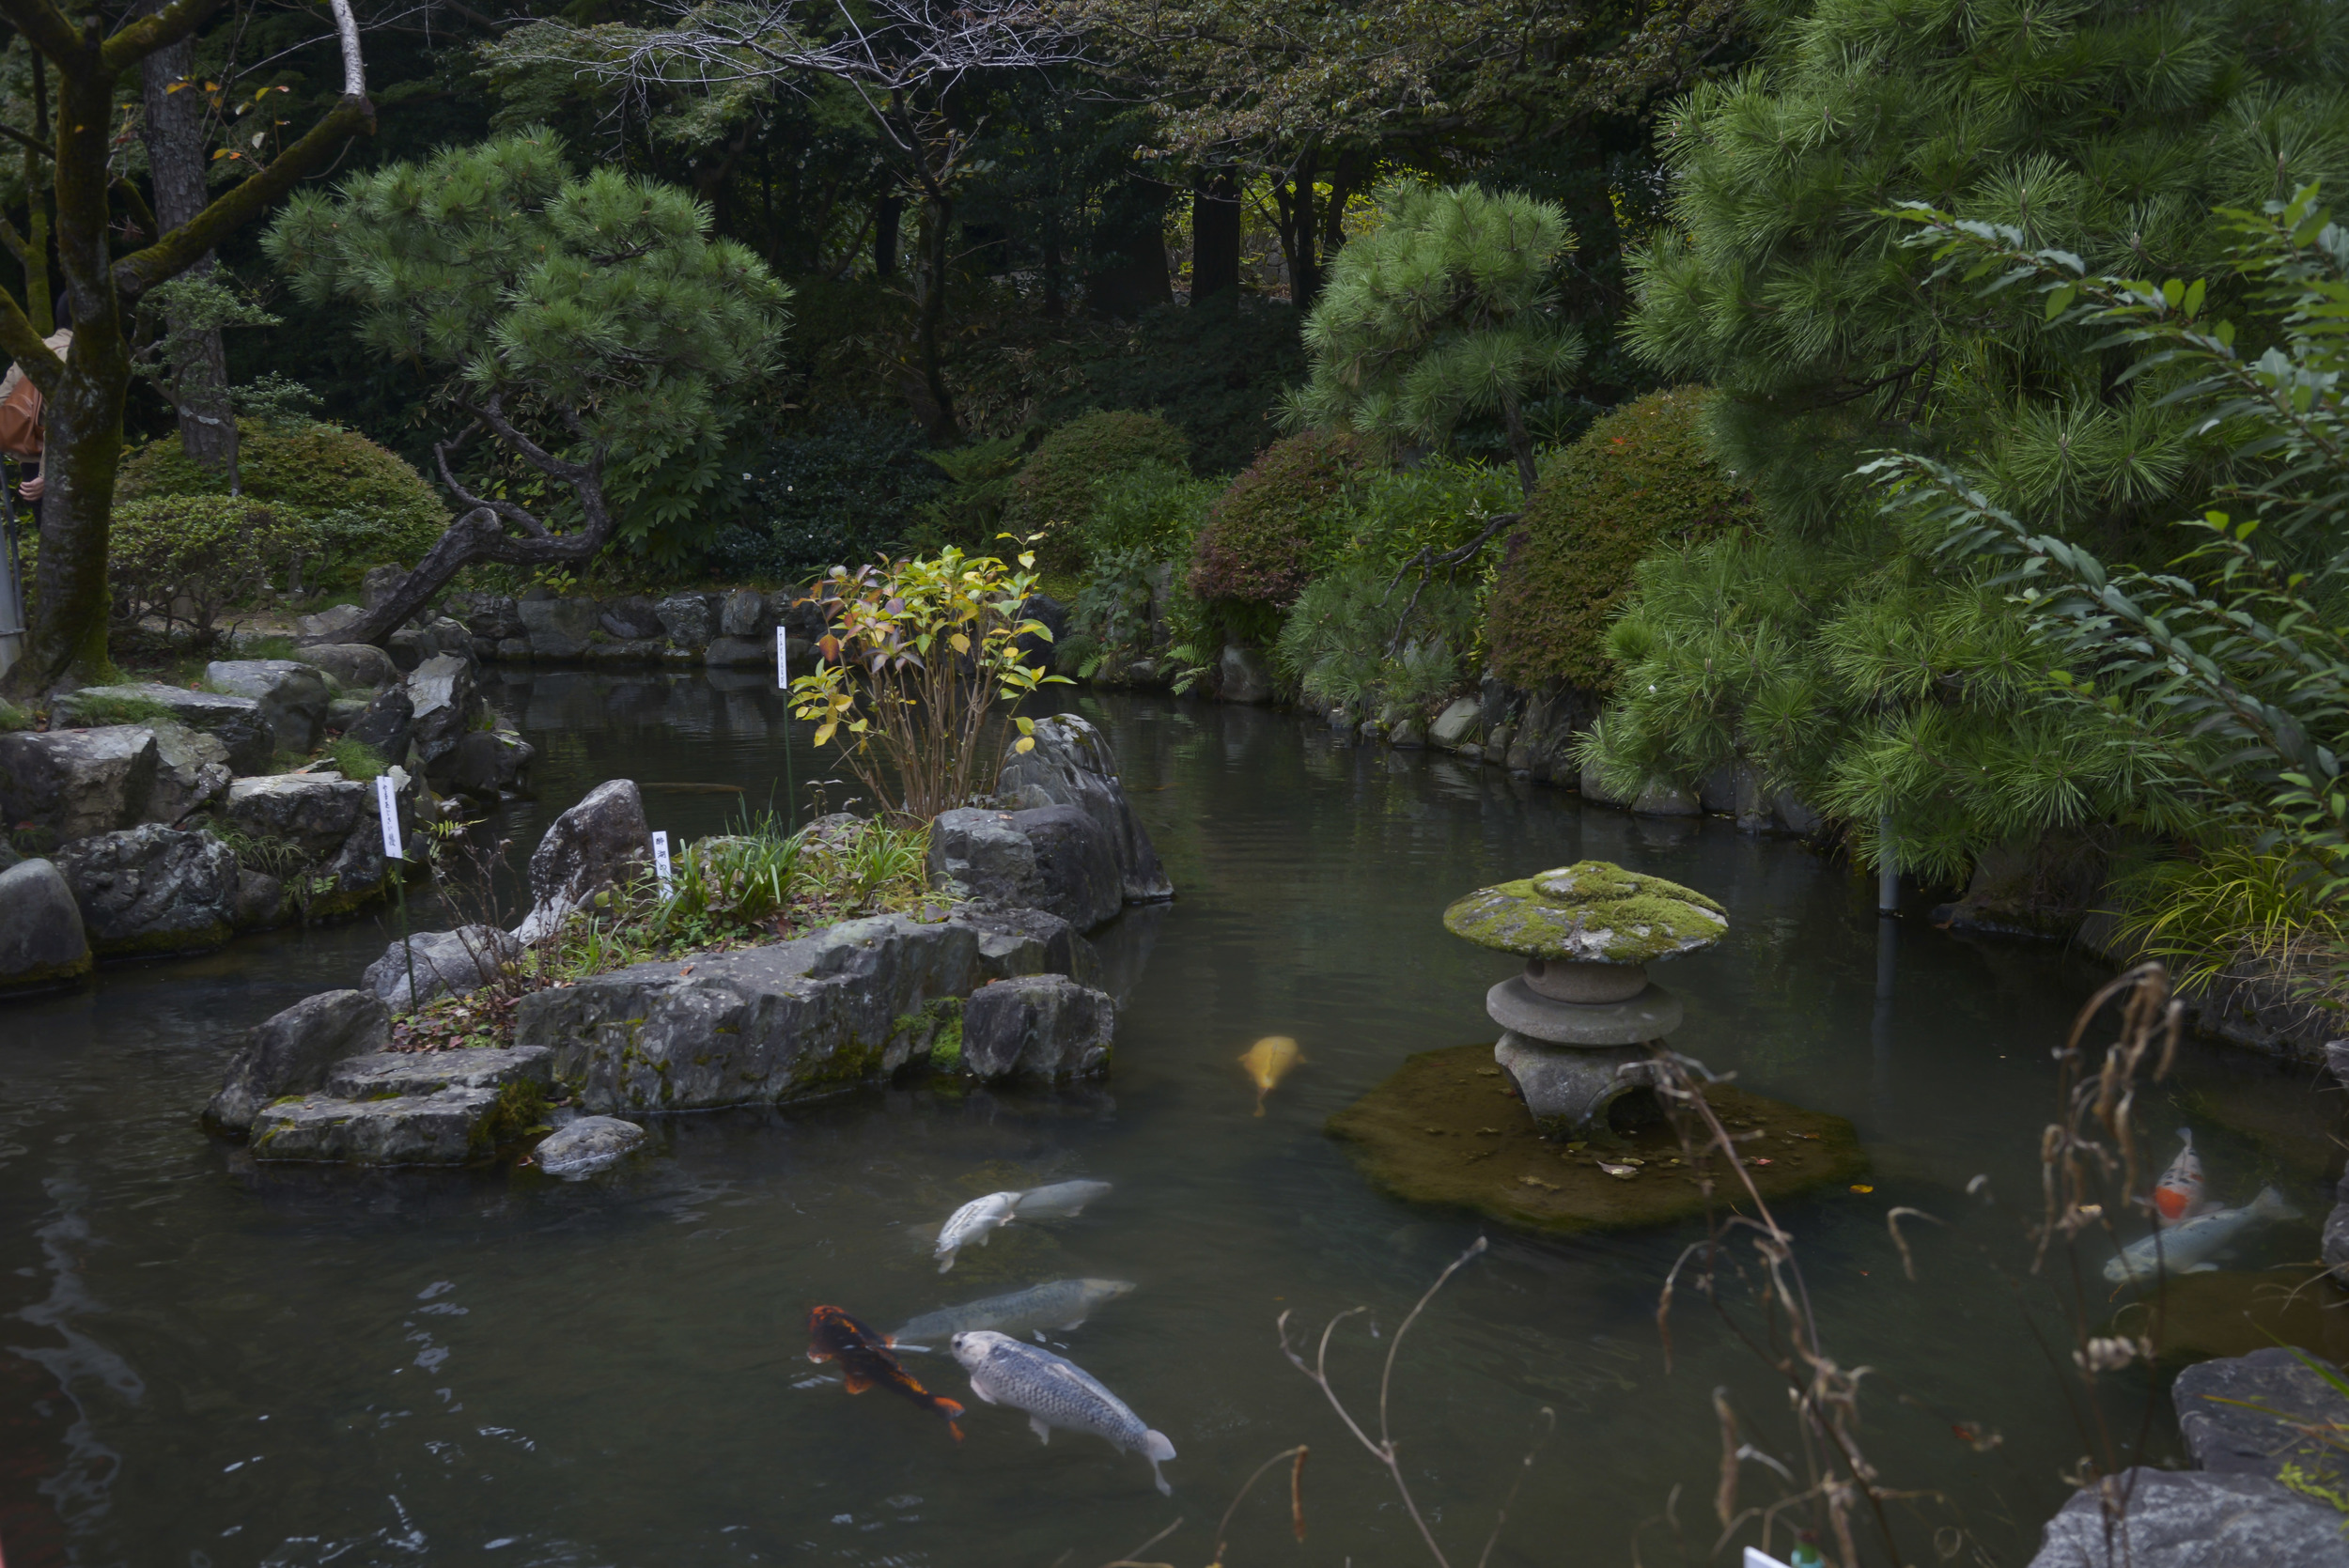 Fish swim throughout a pond within the Takahata Fudo Temple grounds in Hino City, Japan, Nov. 1, 2015. Visitors can get to the temple through the Niomon, the main gate, to view the Fudodou, the main temple, multiple buildings and 88 Buddhist statues throughout a hiking path. (U.S. Air Force photo by Senior Airman David Owsianka/Released)